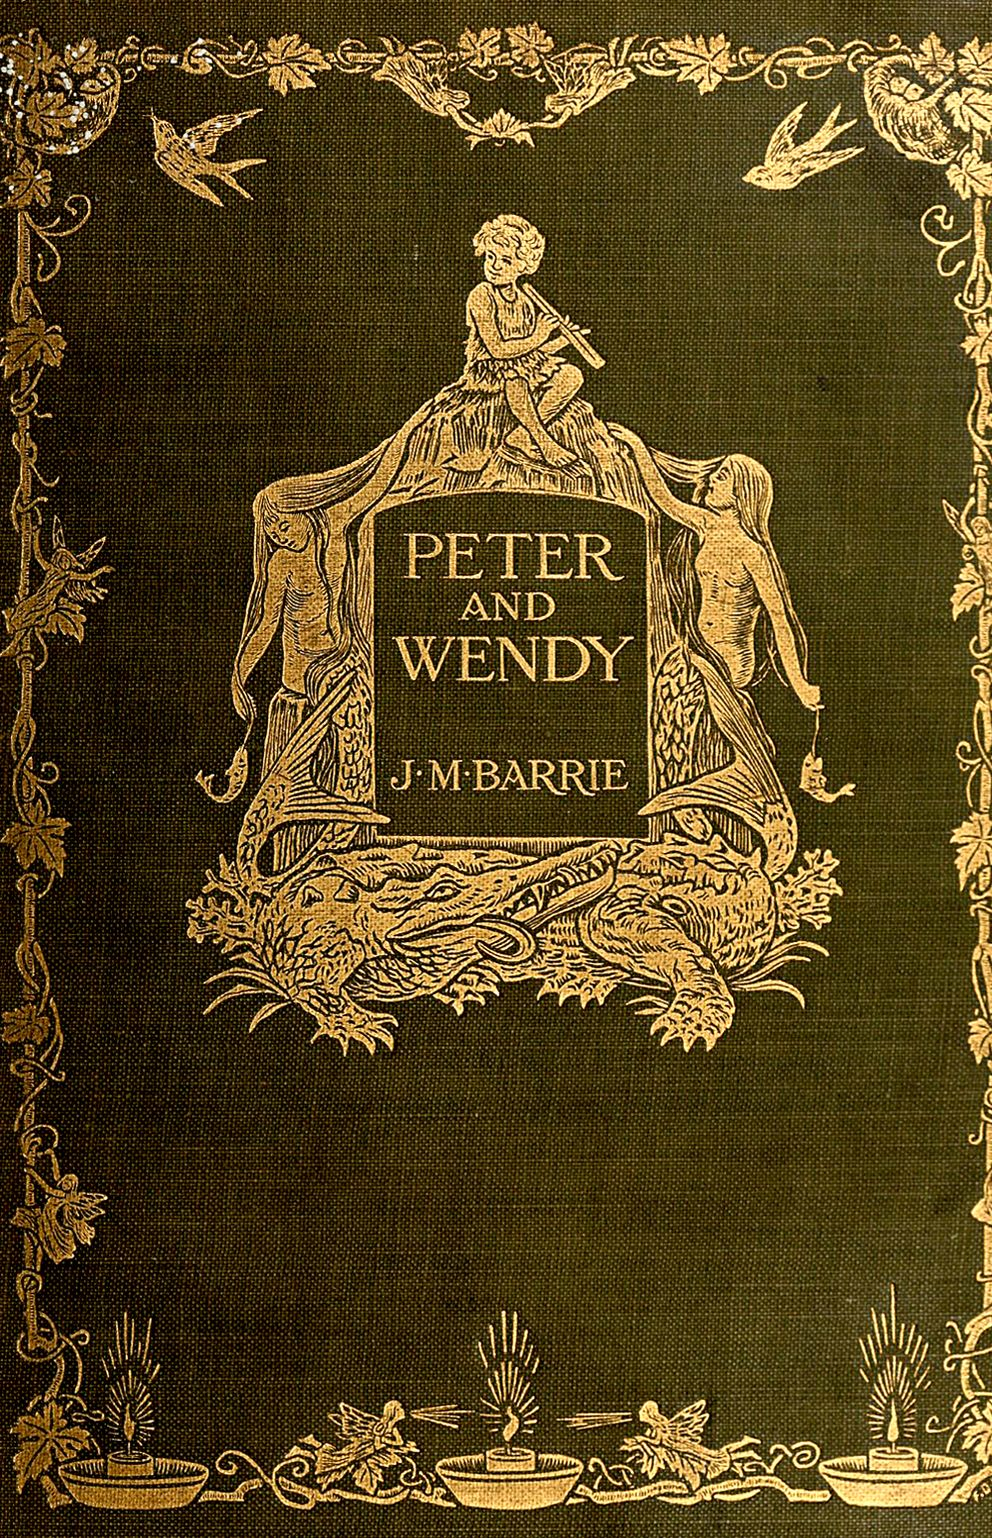 Peter and wendy by j m barrie charles scribners sons